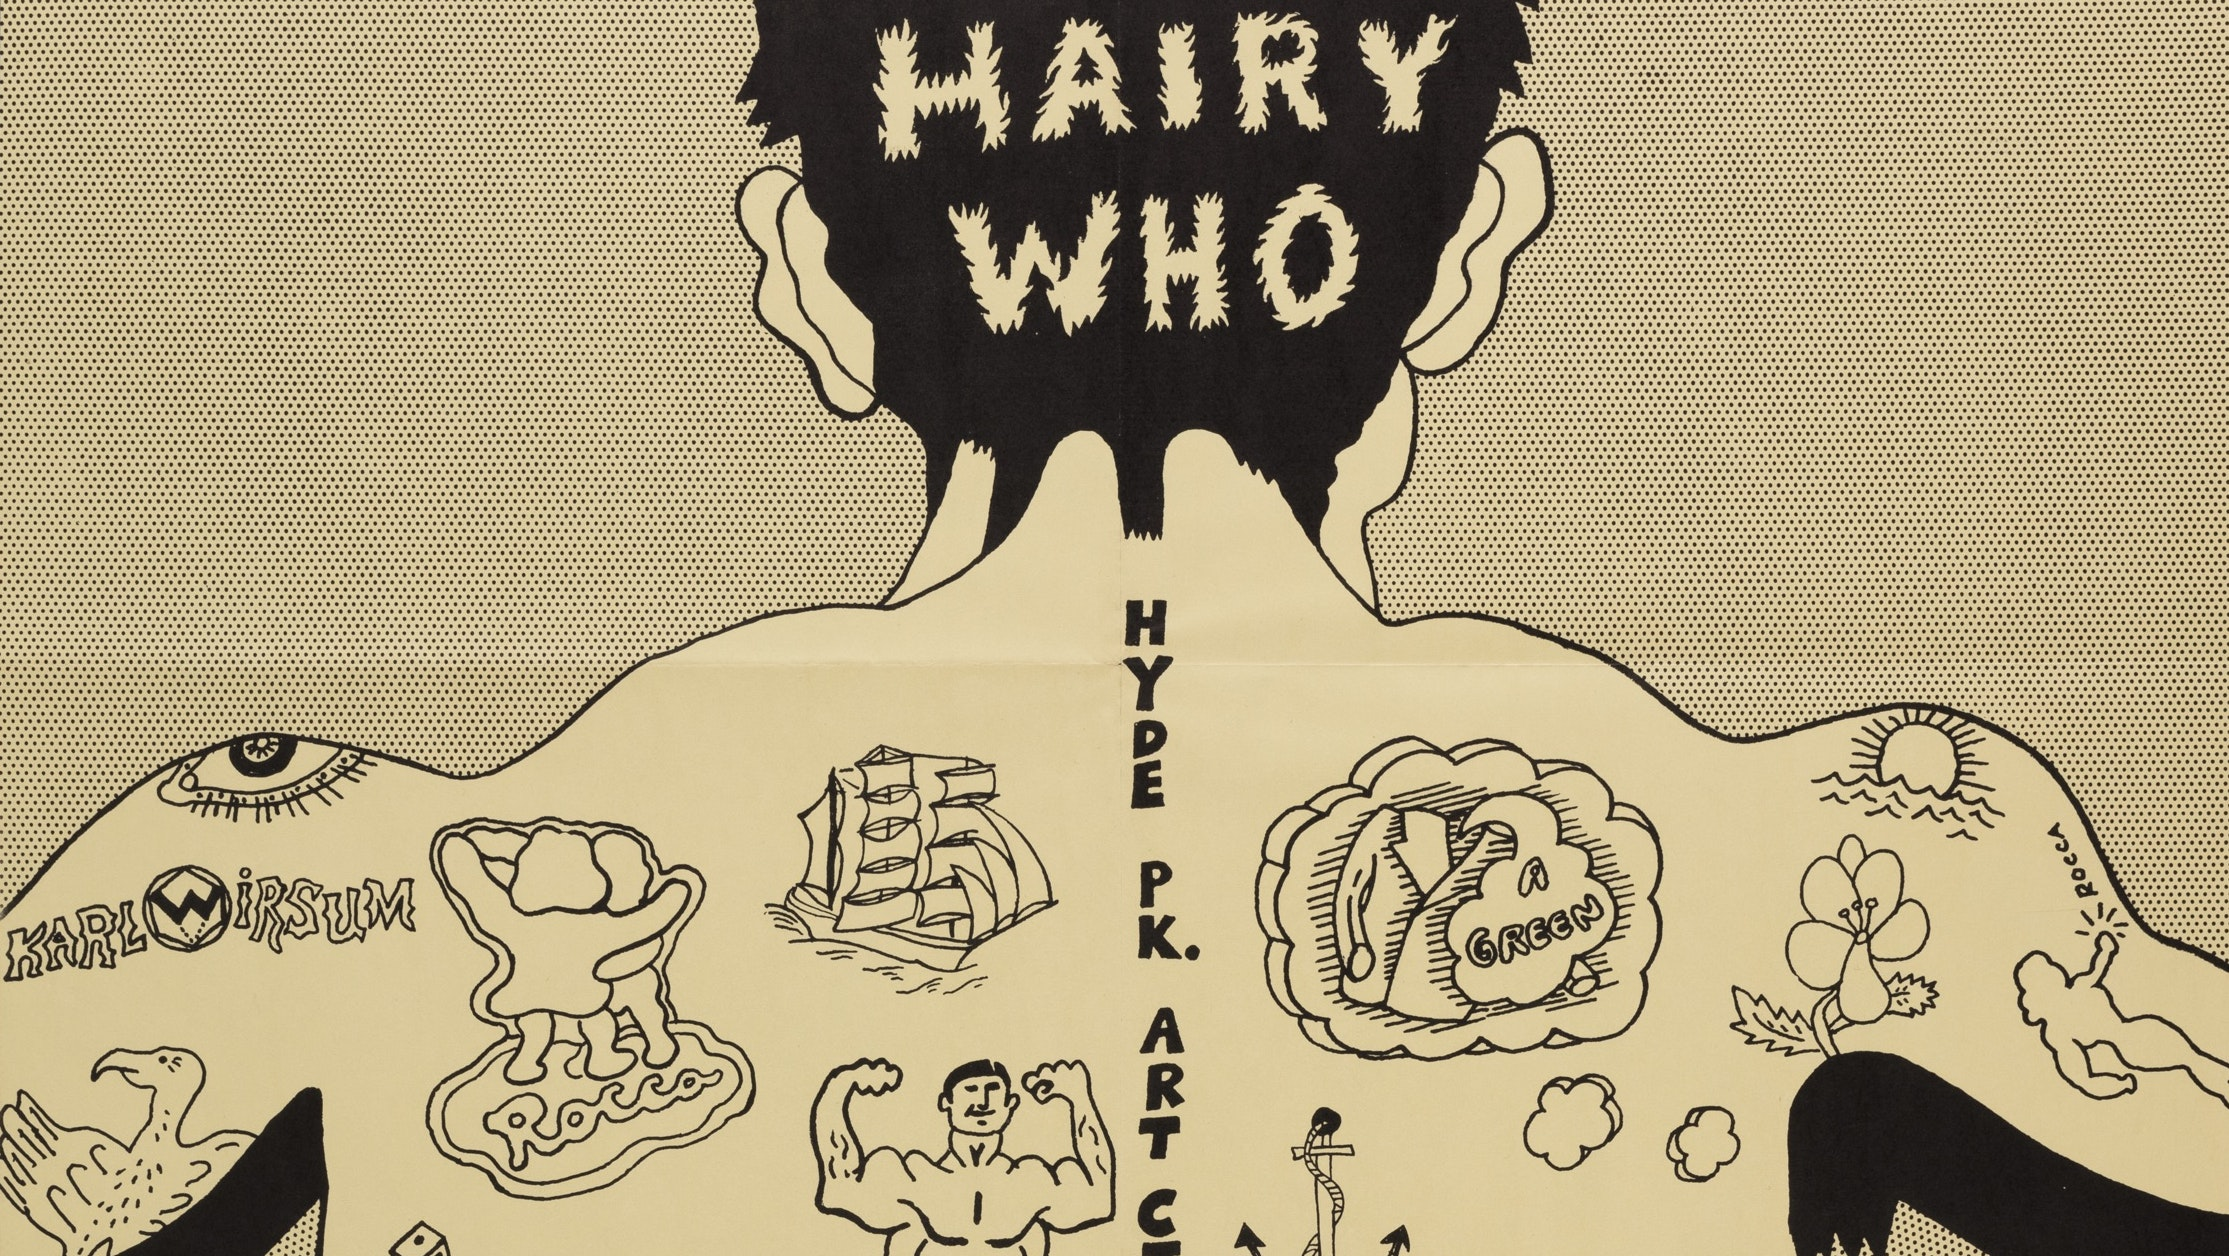 Cover of Hairy Who catalog with contributions from each member of the group